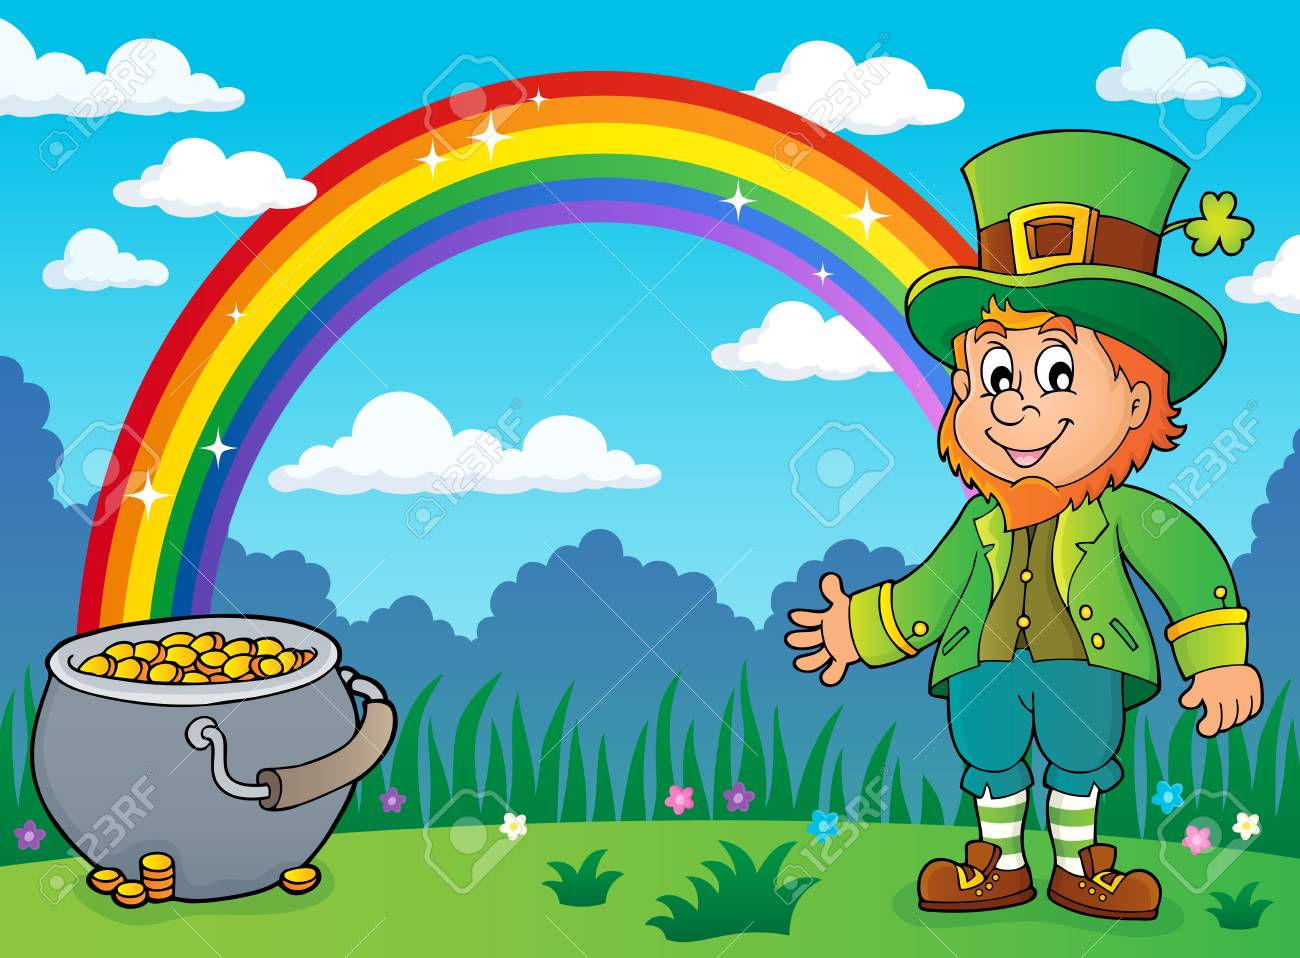 95371649-leprechaun-theme-image-with-rai